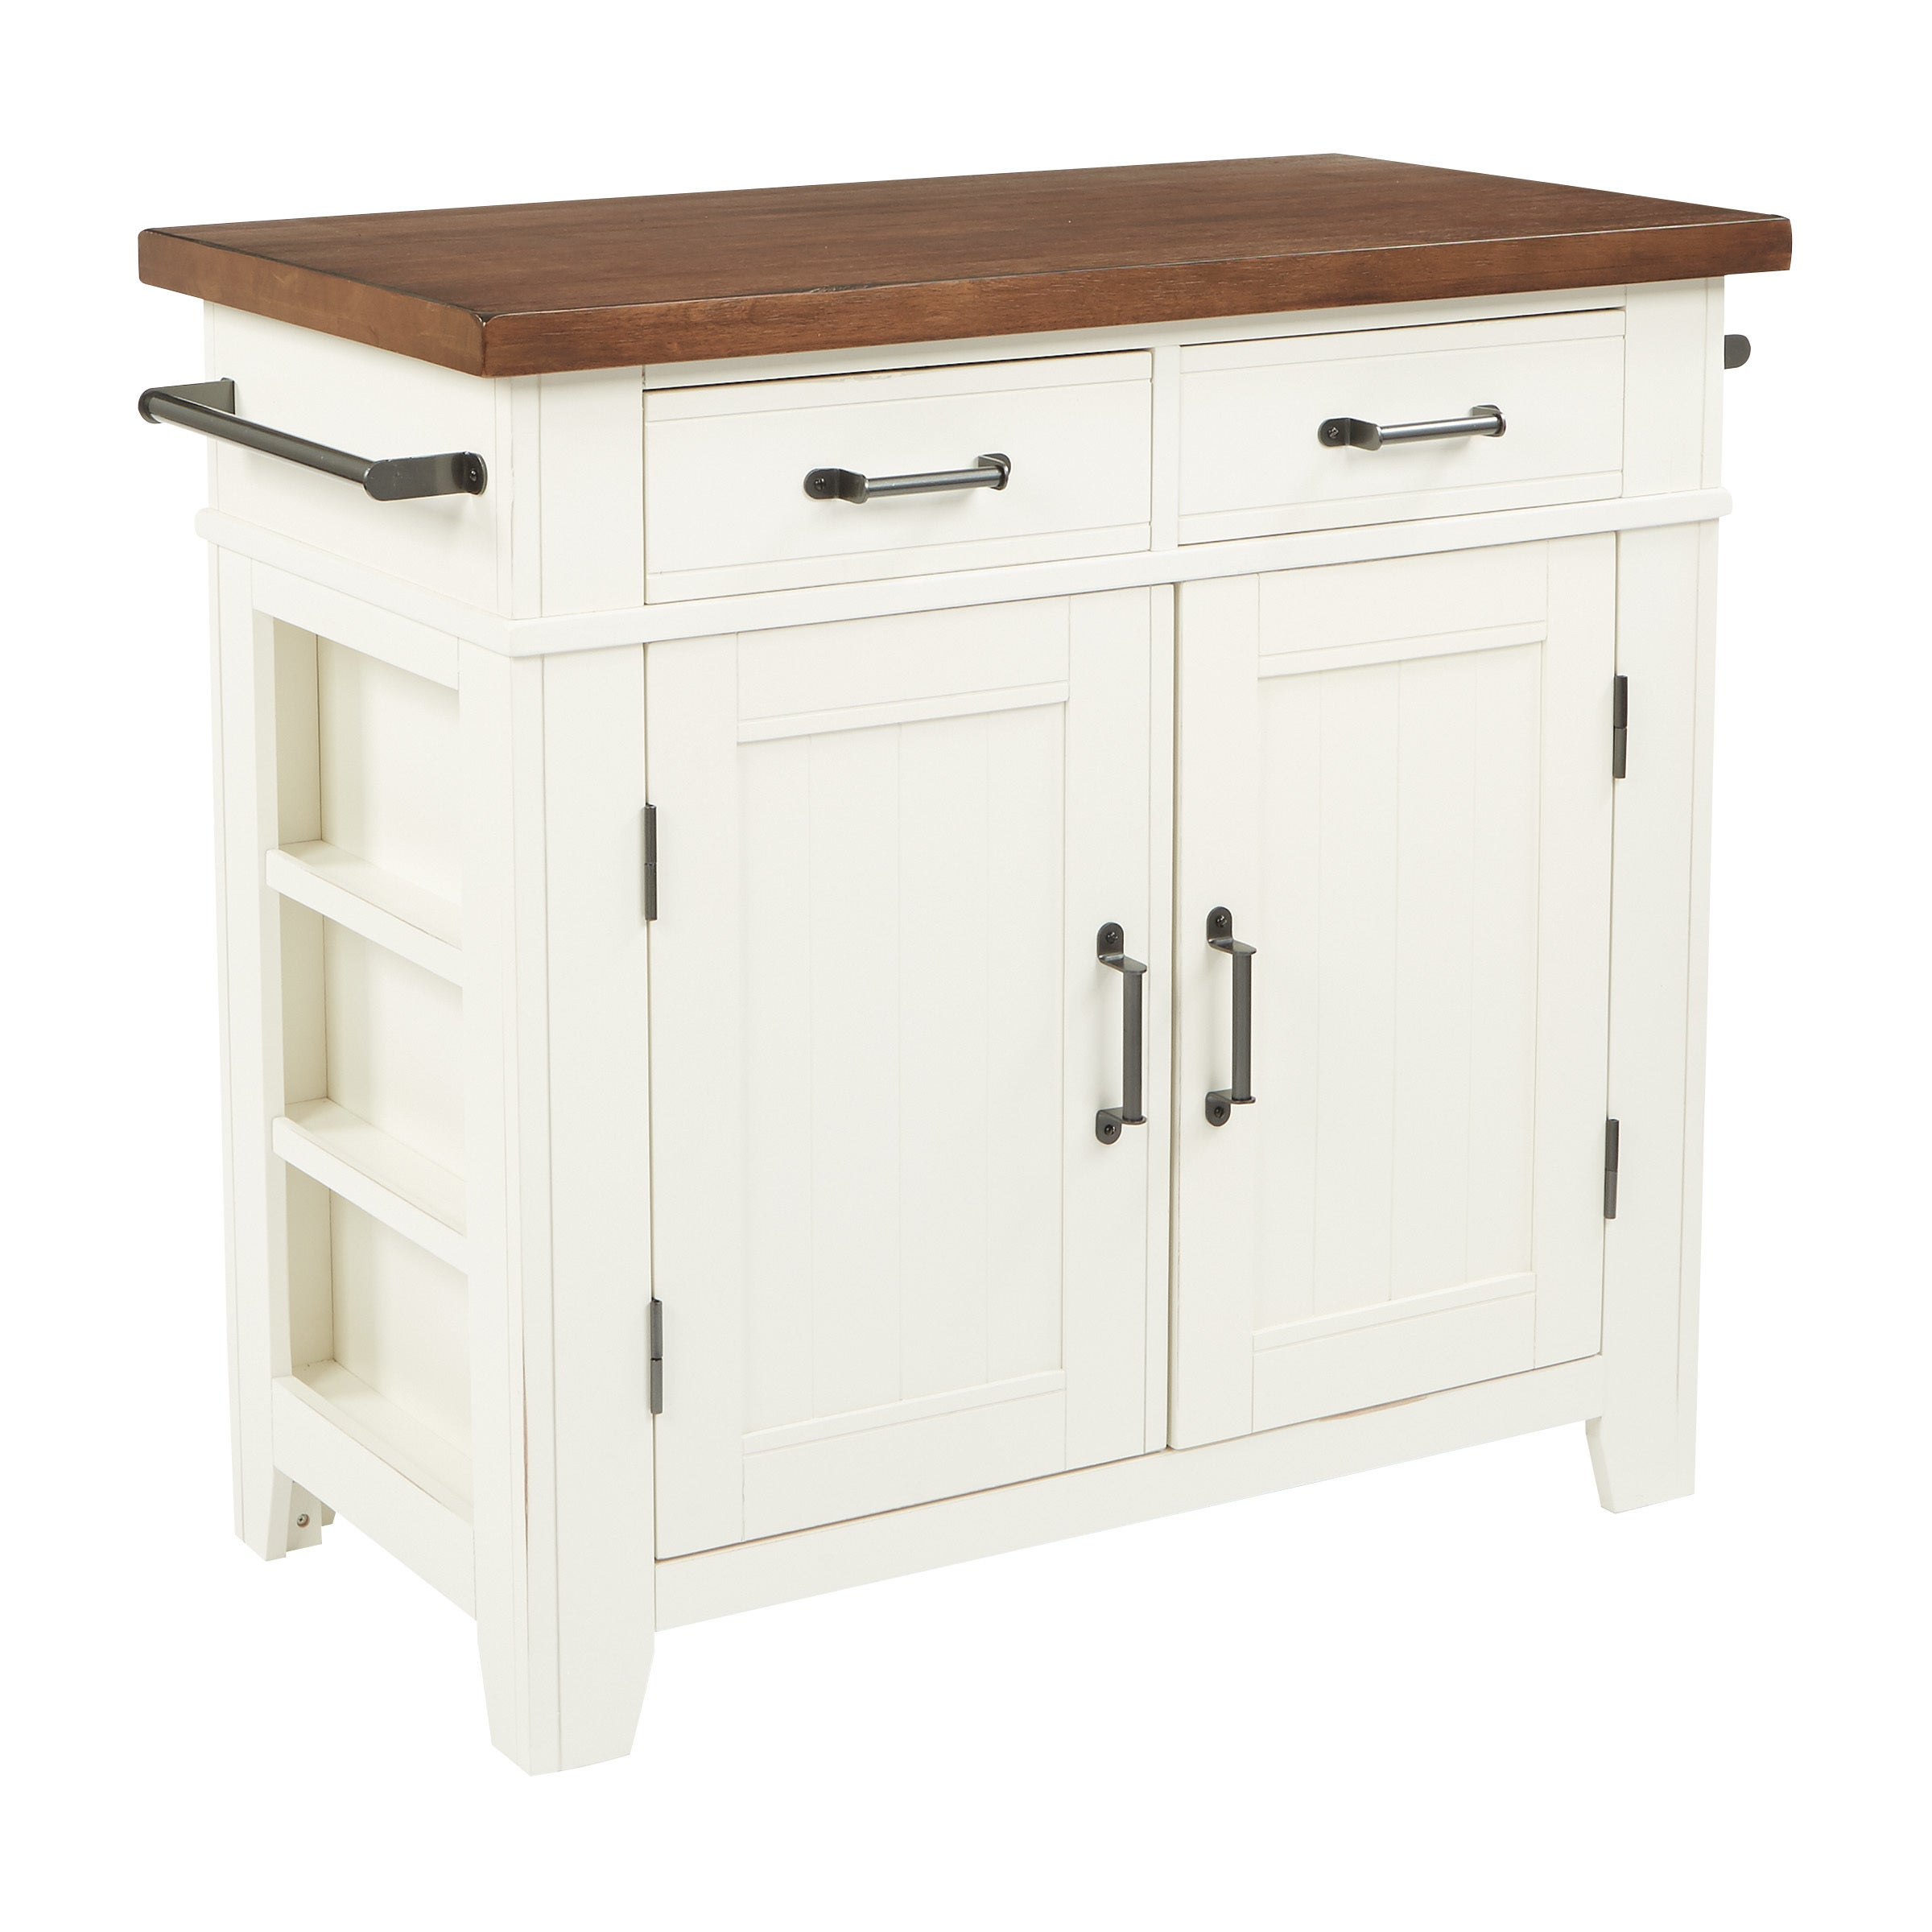 Shop The Curated Nomad LaPaglia Farmhouse Kitchen Island Free - Overstock kitchen island